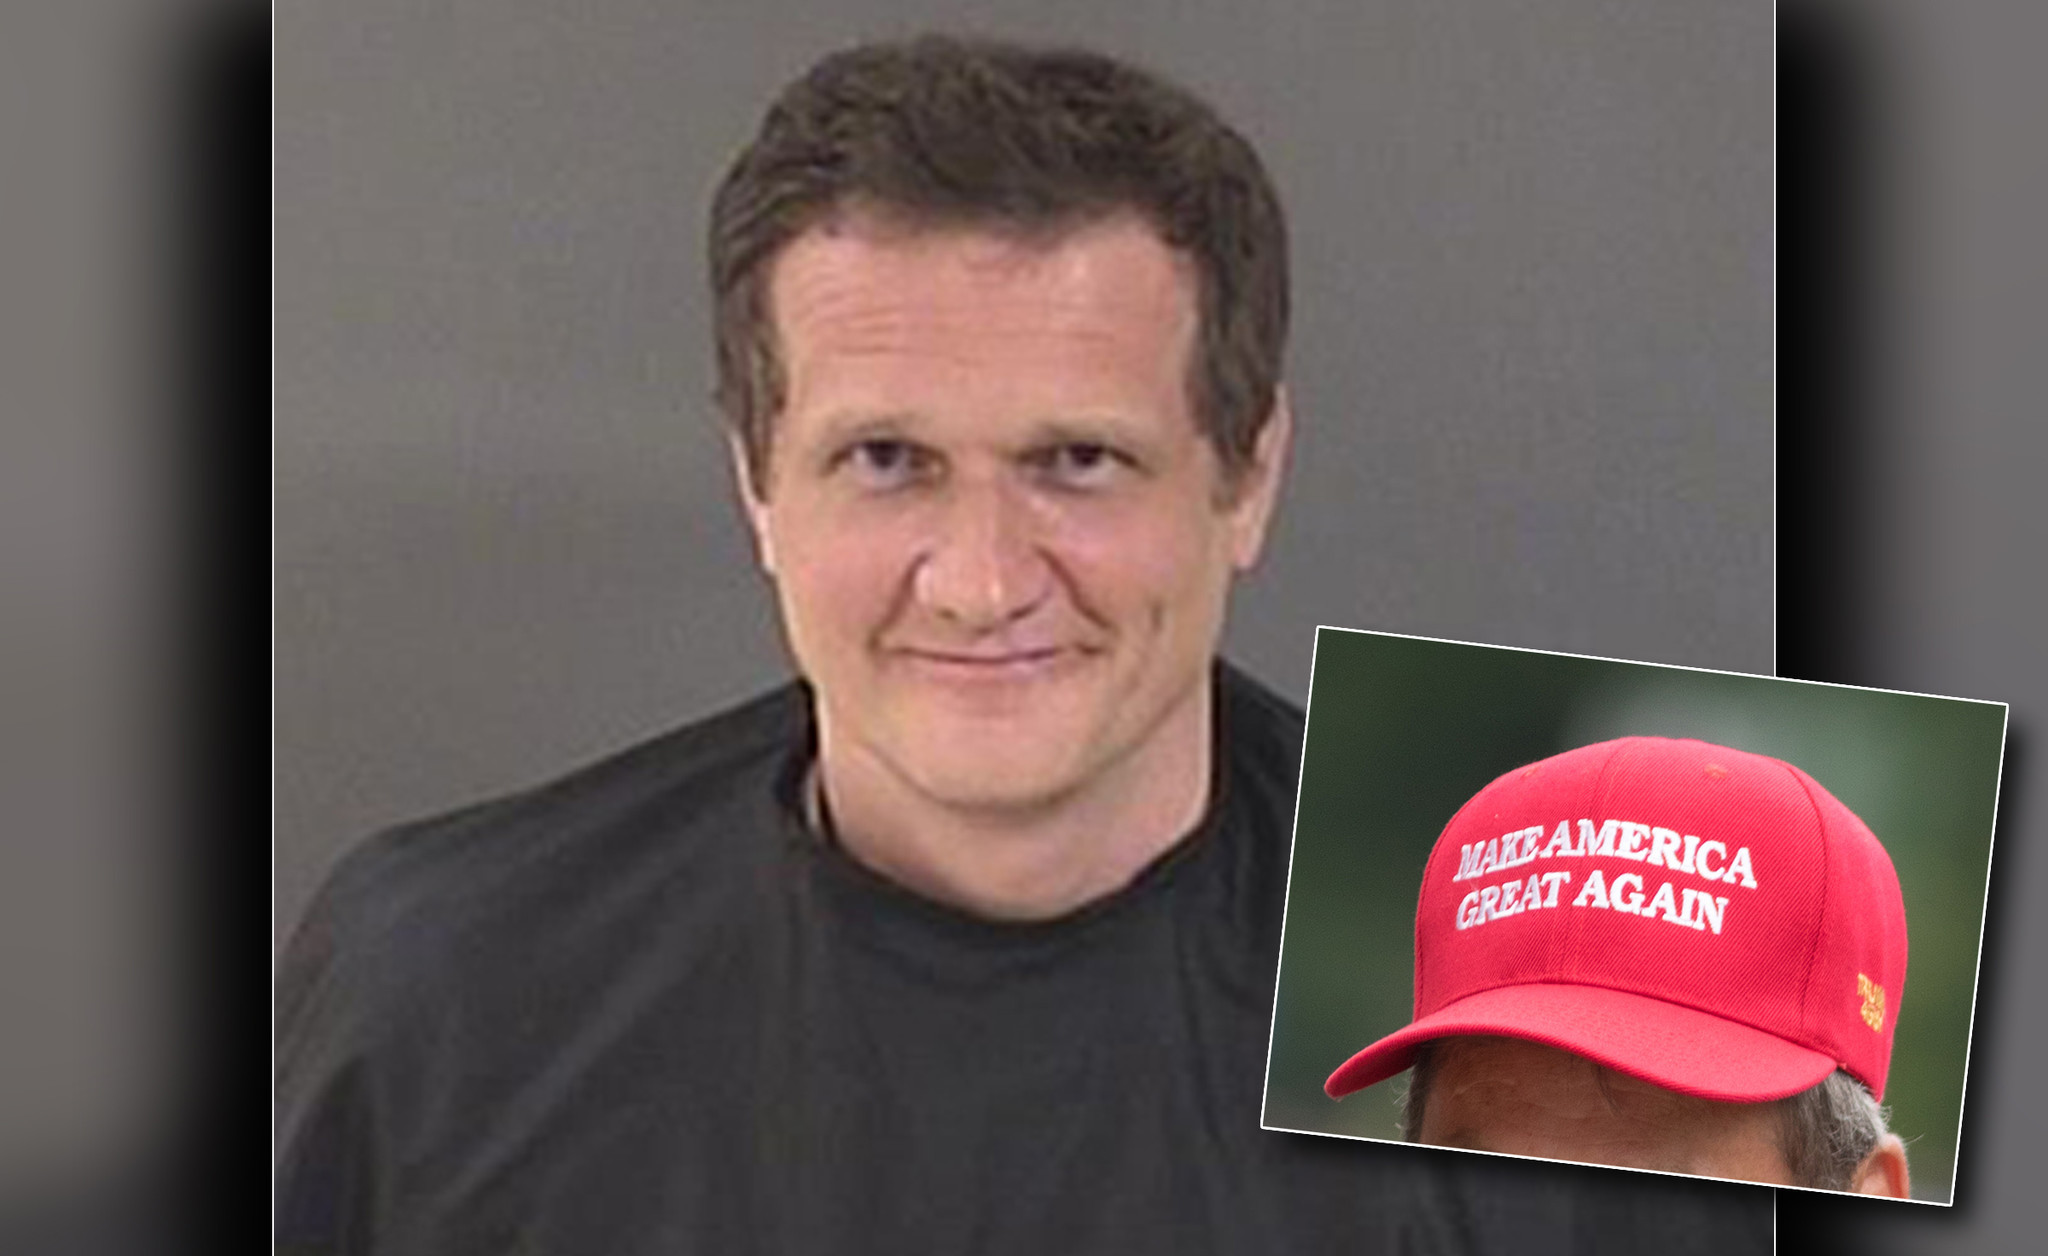 Florida man spits on Trump supporter wearing MAGA cap in a bar, did it to show support for law enforcement